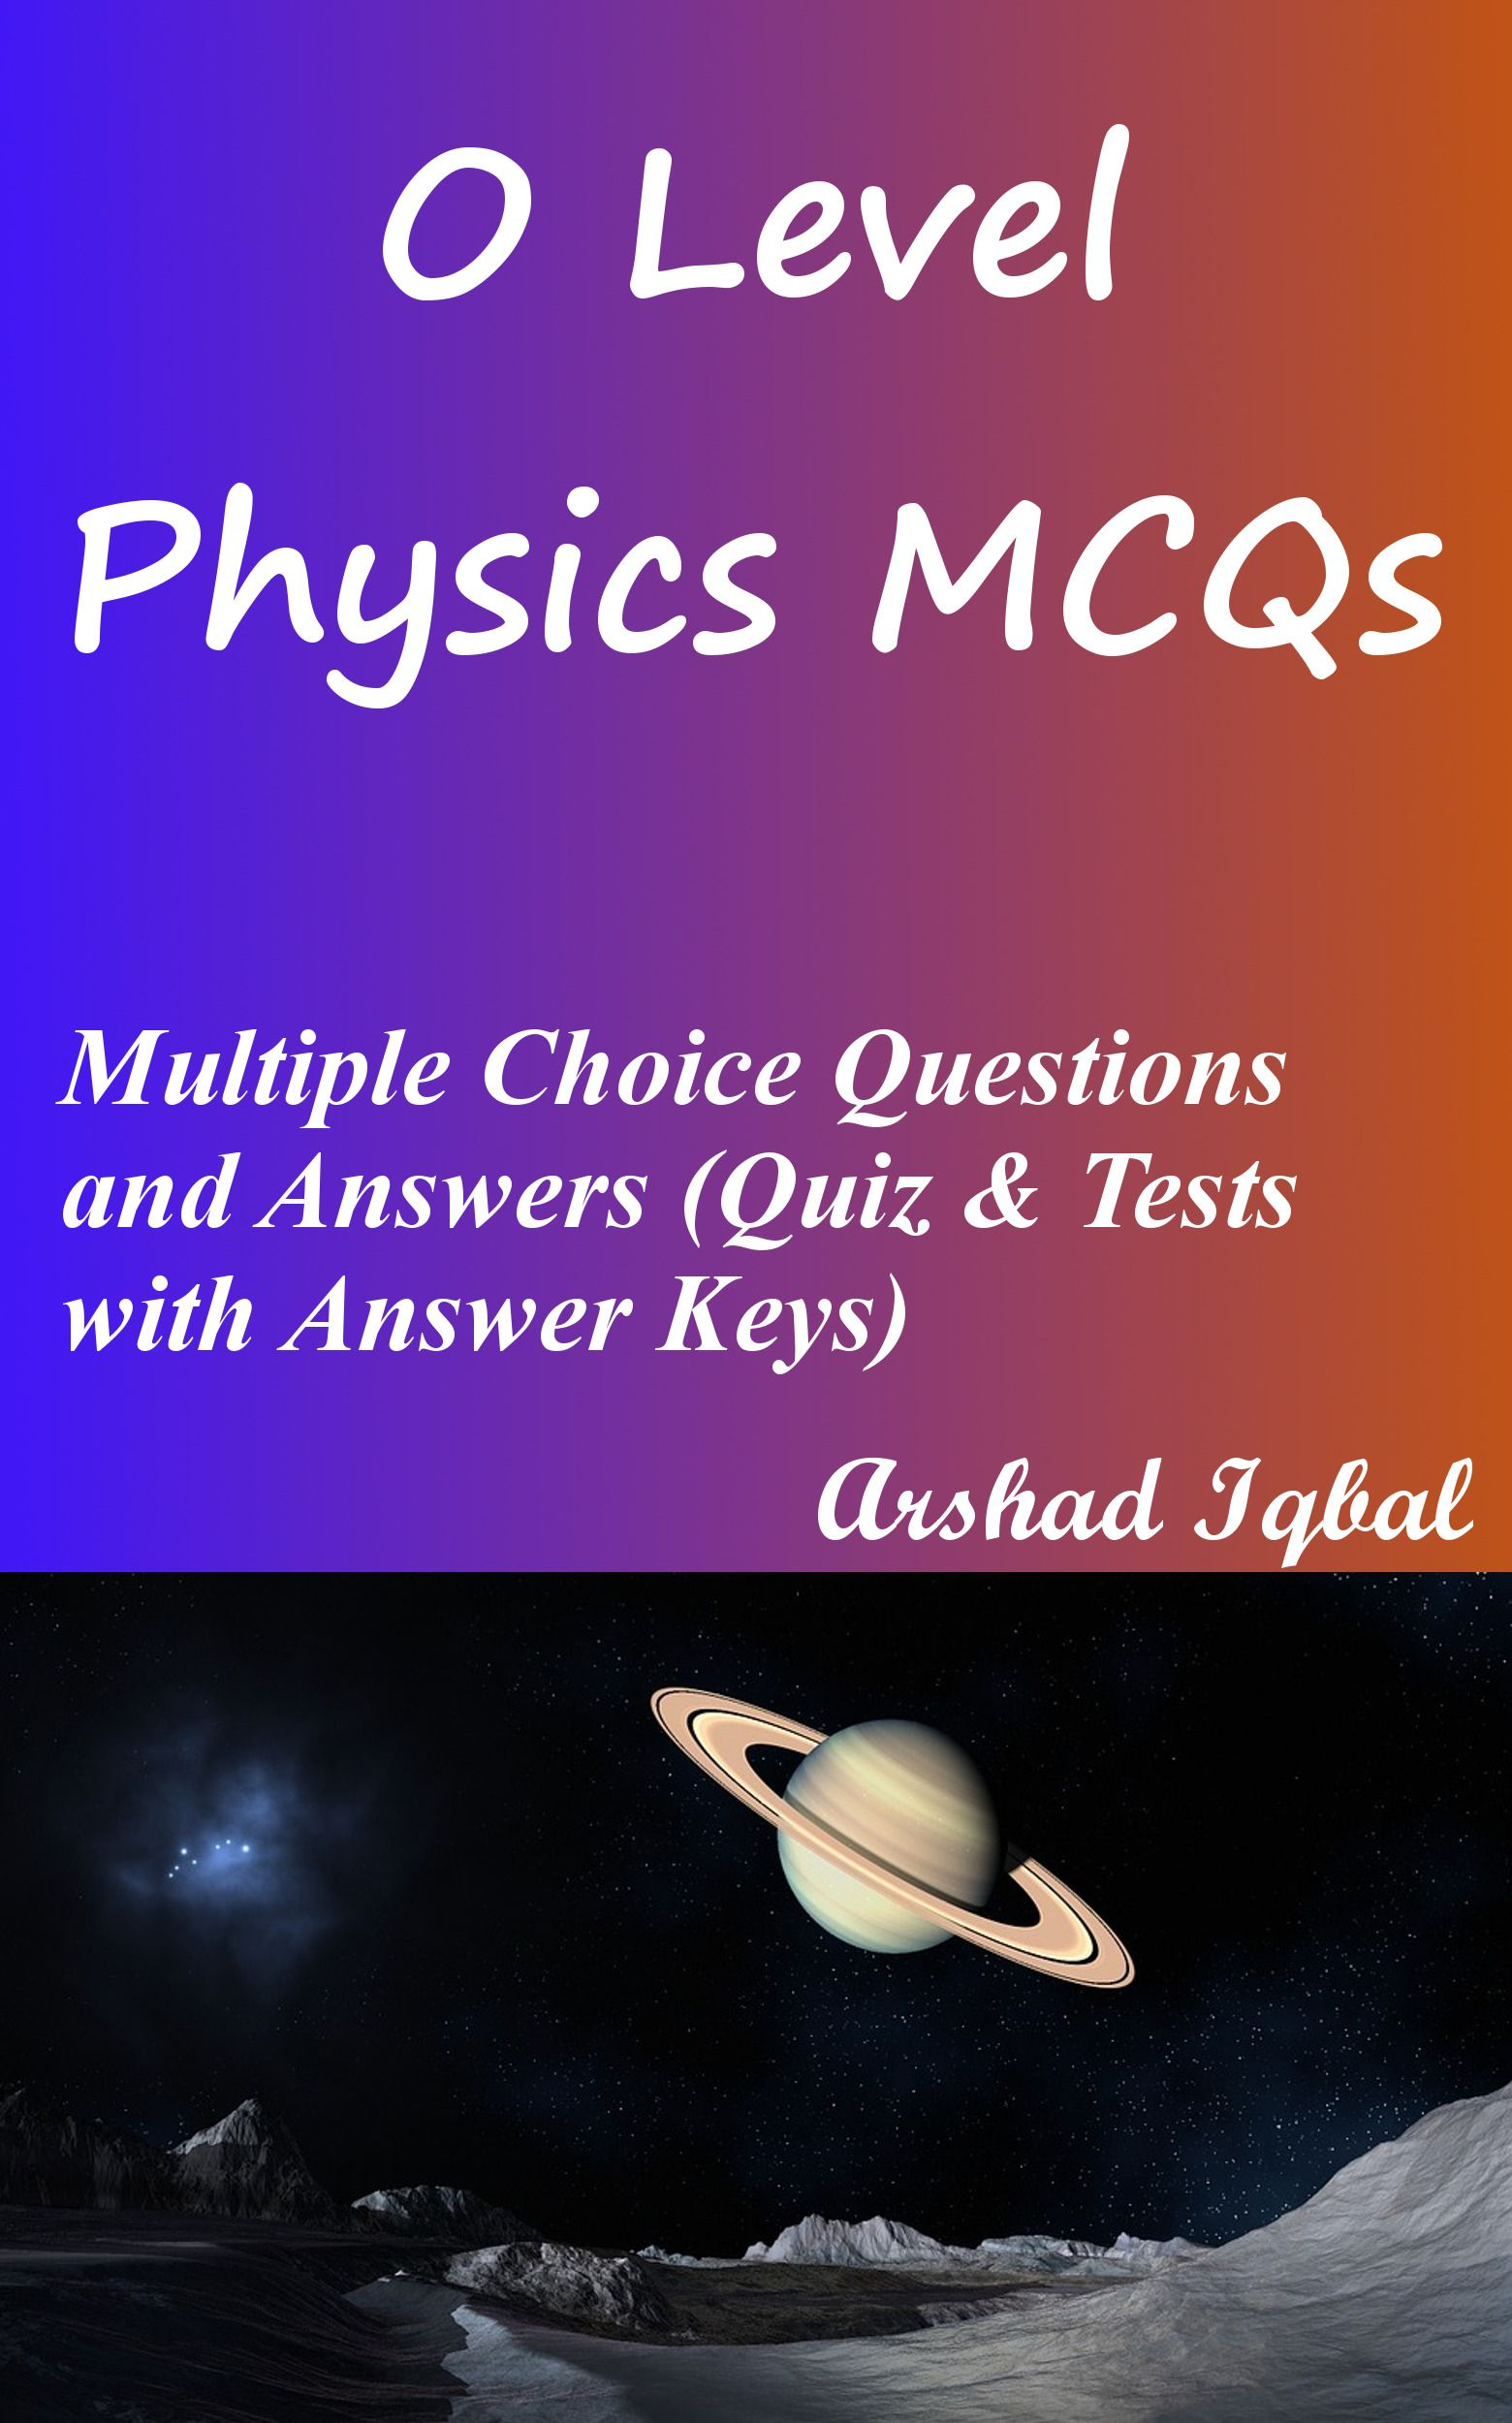 O Level Physics Mcqs Has 896 Multiple Choice Questions